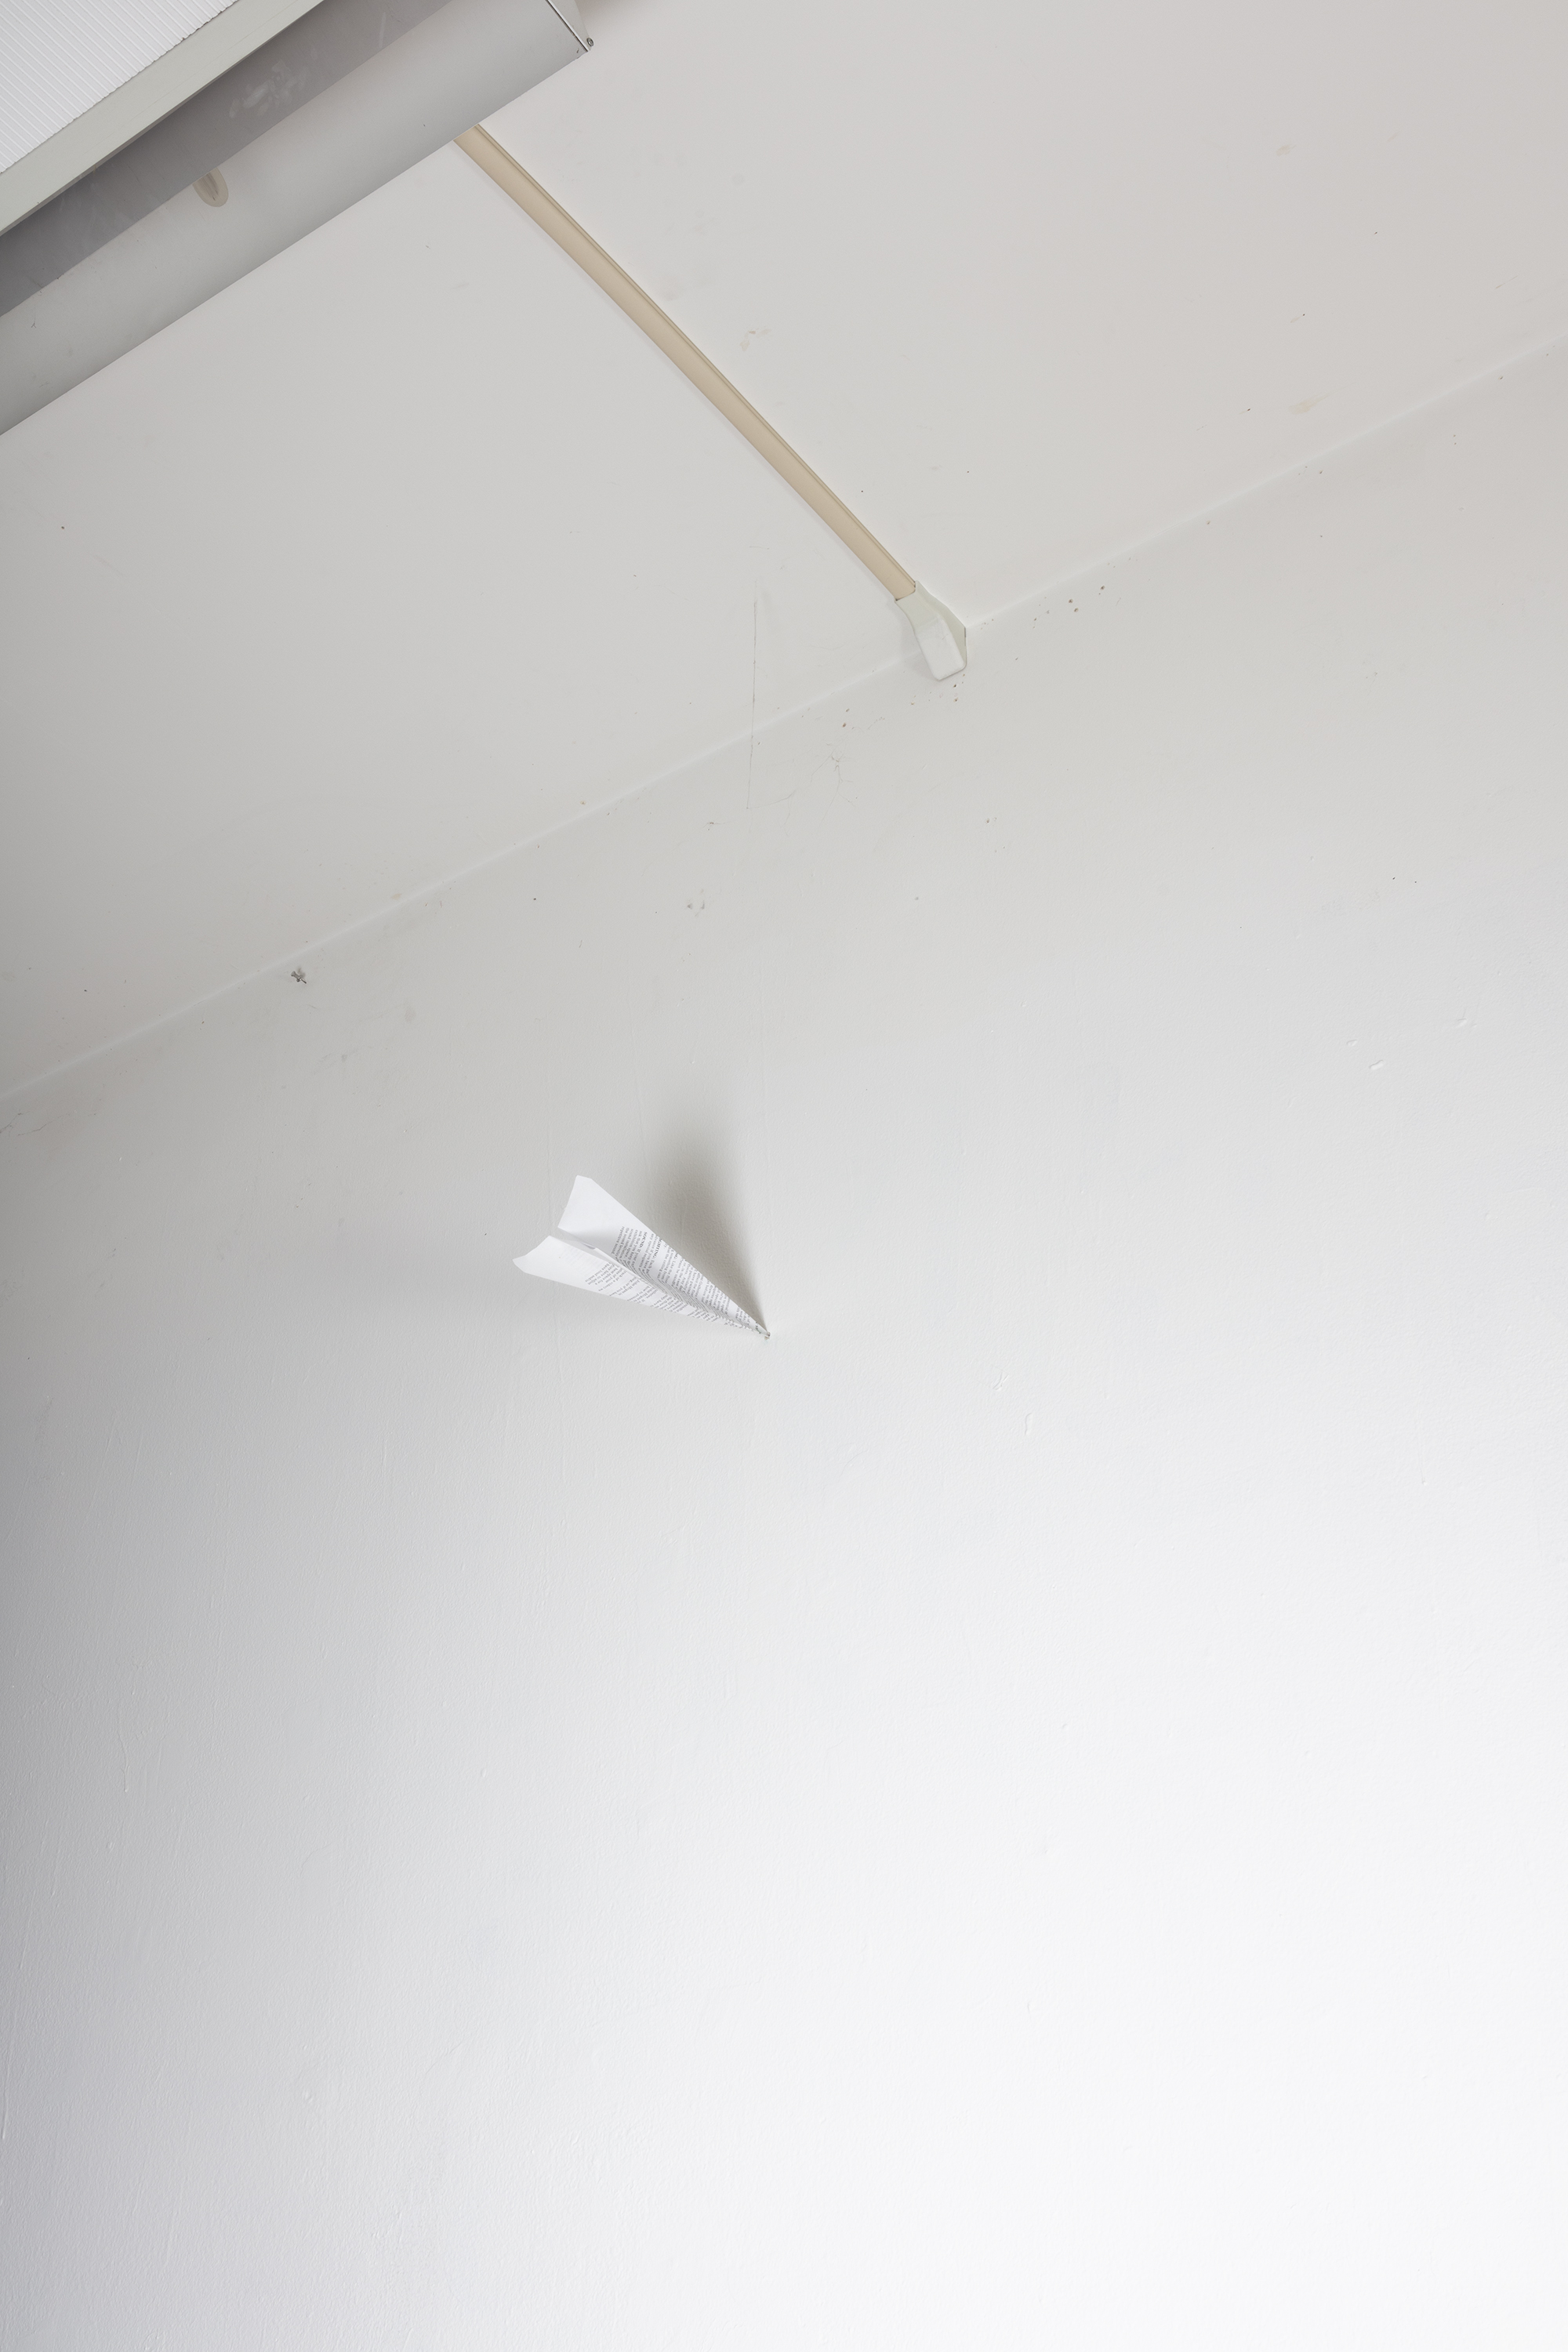 Antoine Midant    Happy Accident , Dimensions Variable, Paper Airplane.